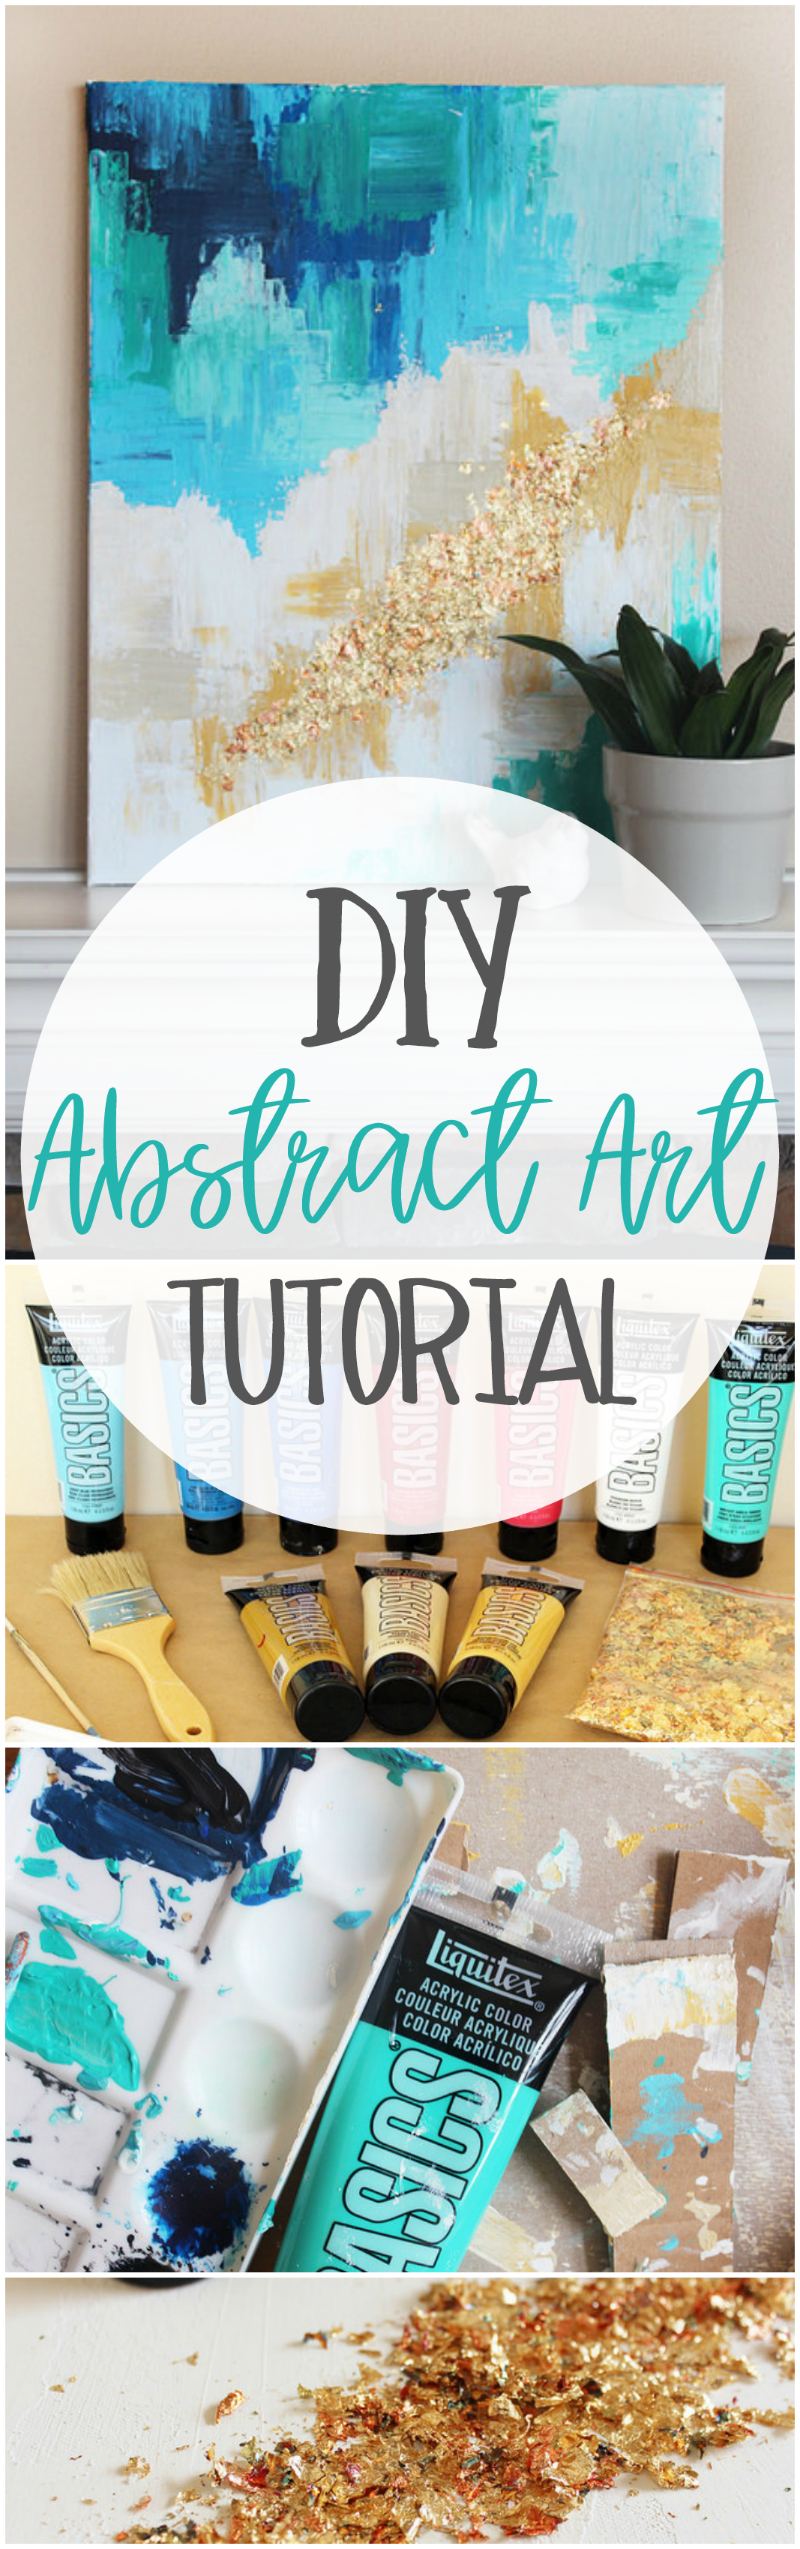 DIY Abstract Art Tutorial. Learn How To Paint An Abstract Painting With Acrylic Paints And A Step By Step Tutorial. Easy Beginner Level Abstrac